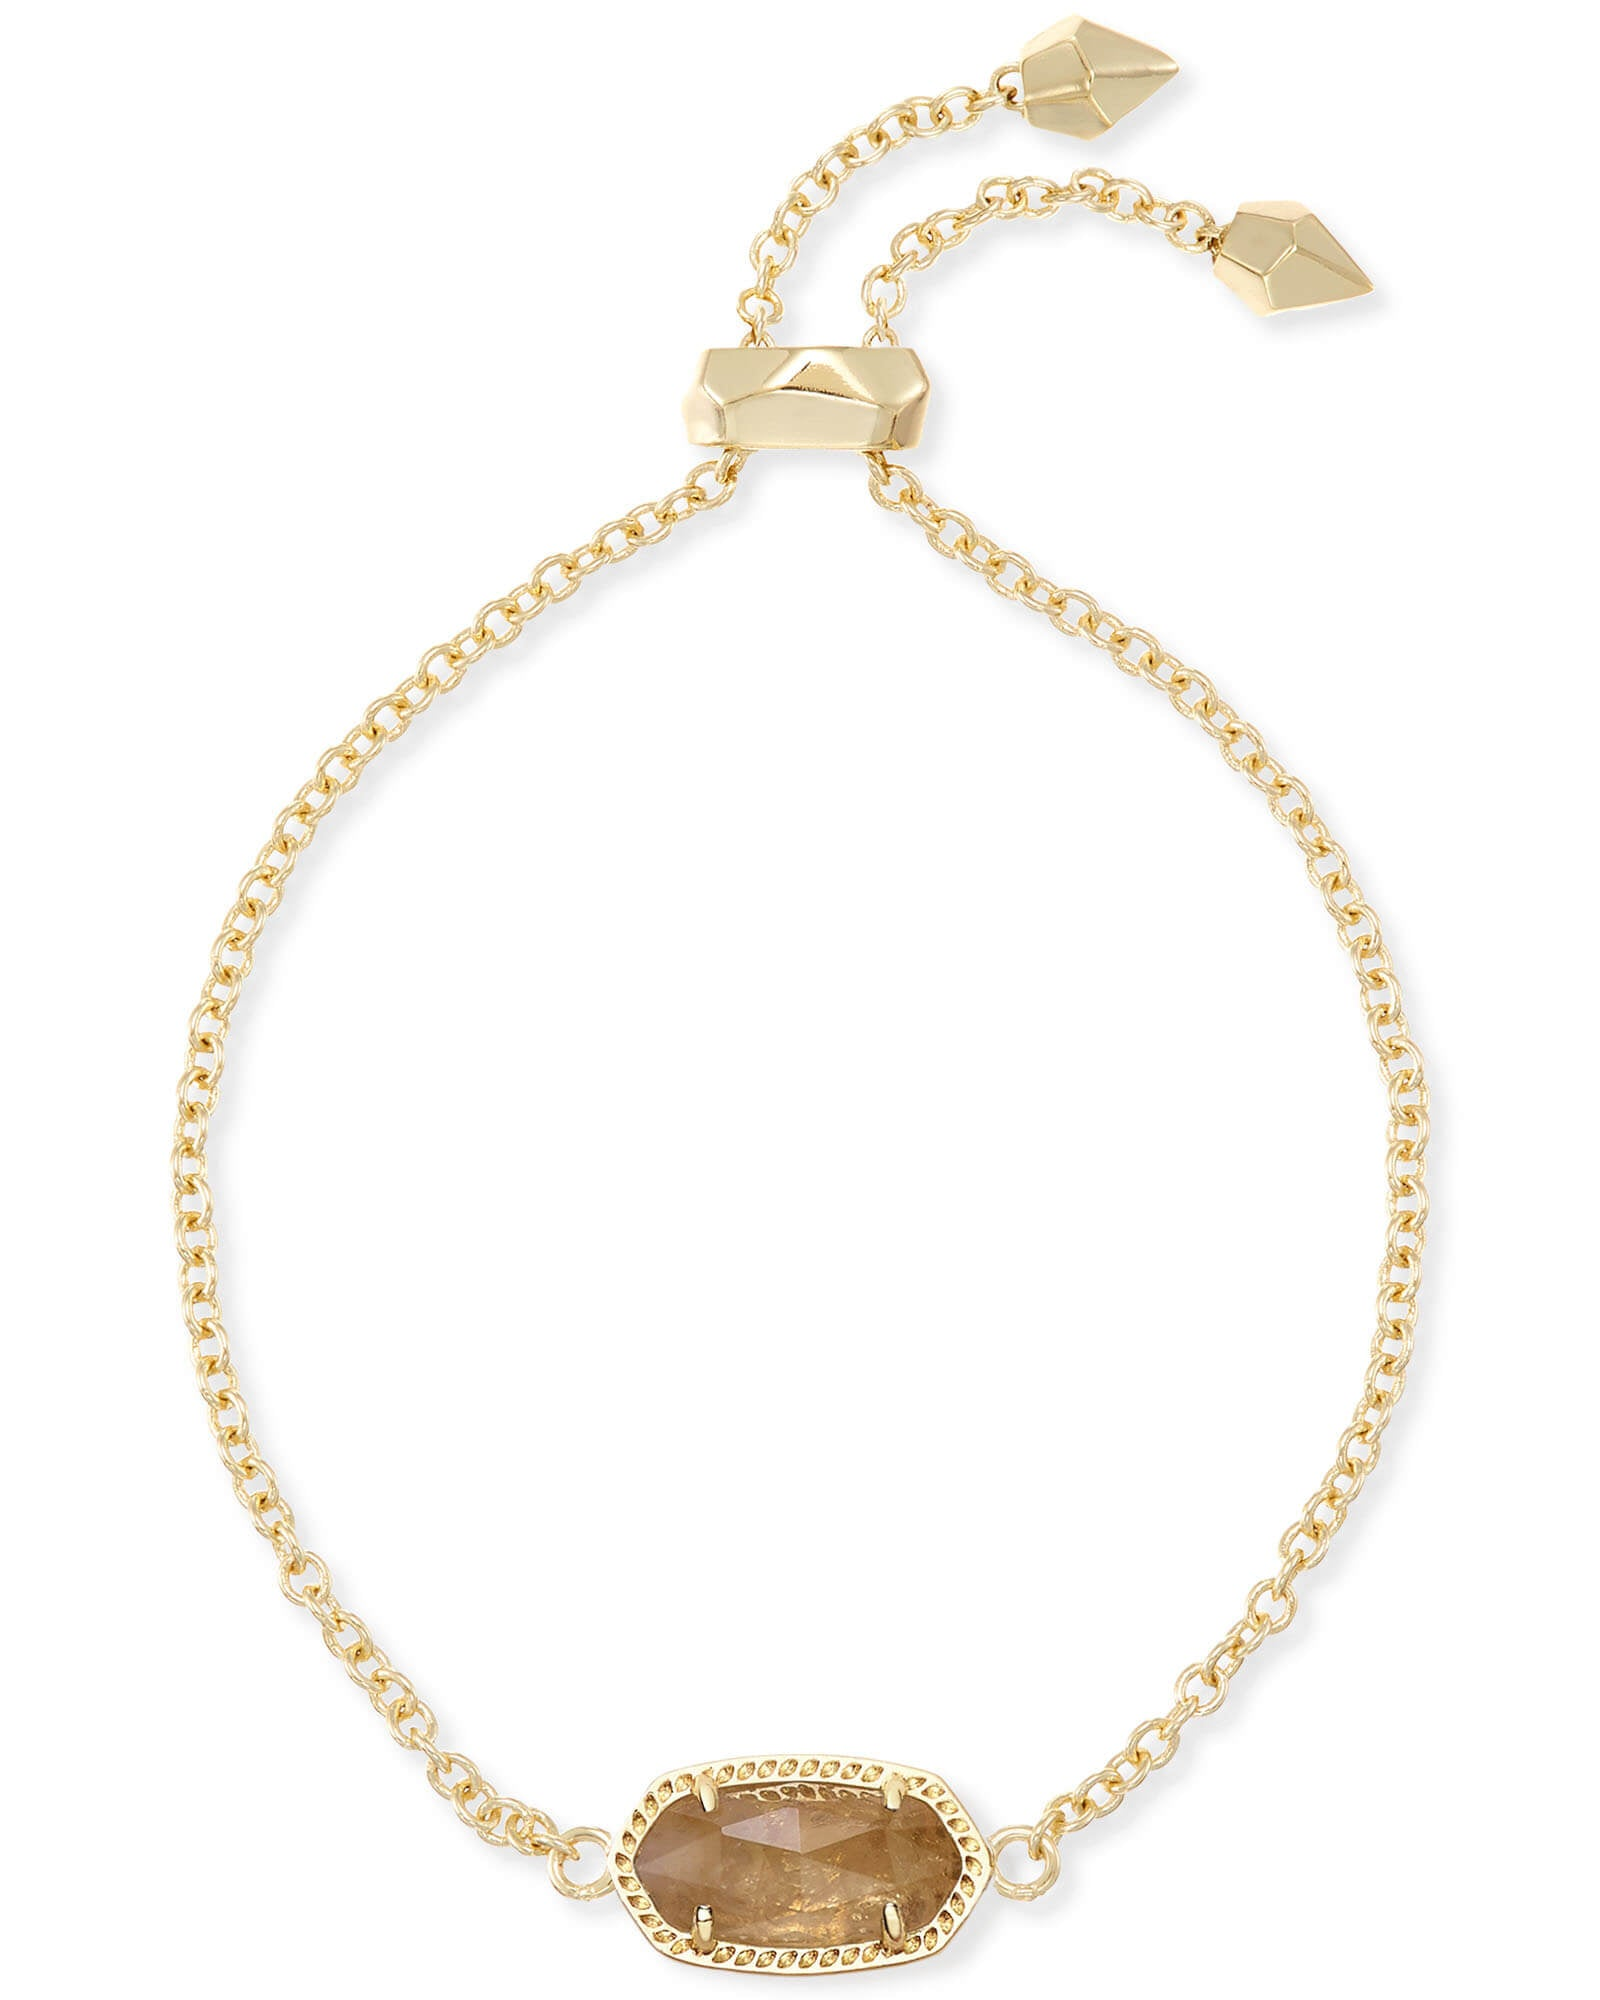 Elaina Gold Adjustable Chain Bracelet In Citrine